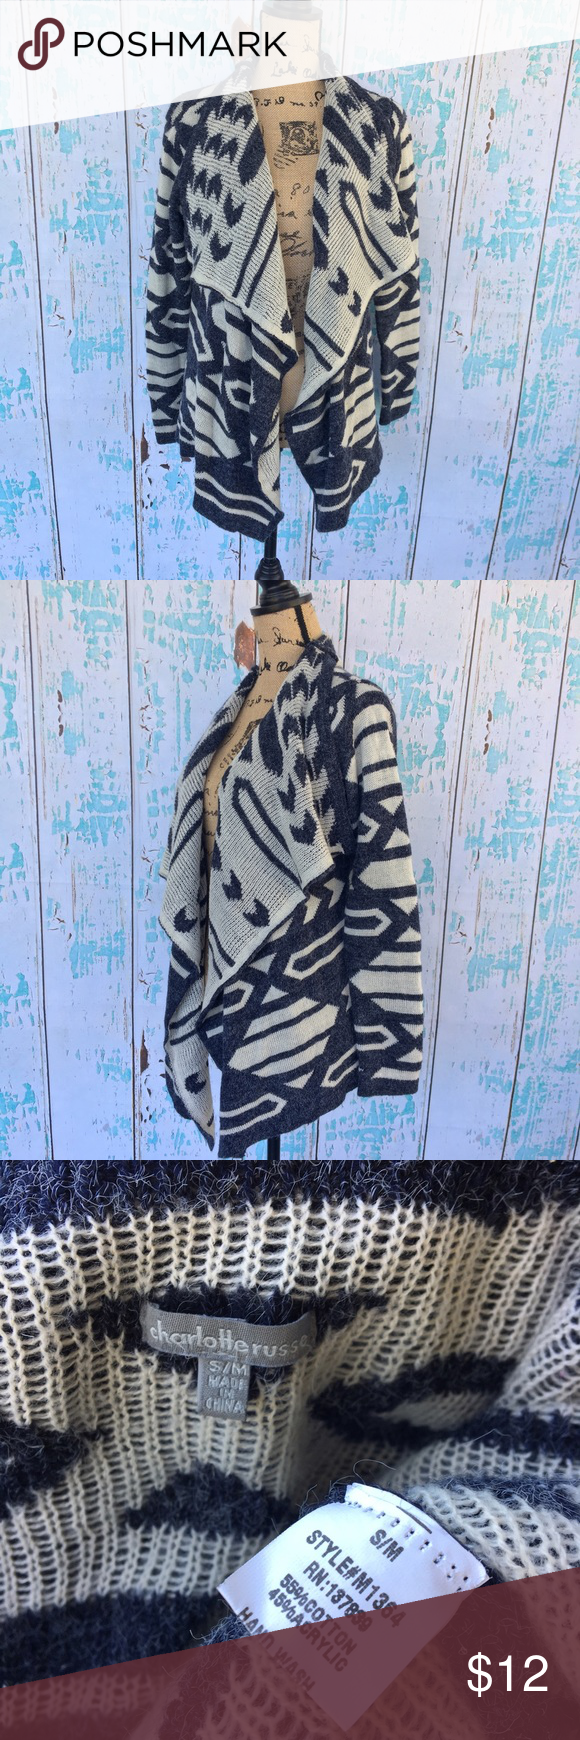 Charlotte Russe tribal print size S/M Charlotte Russe tribal print size S/M Charlotte Russe Sweaters Cardigans